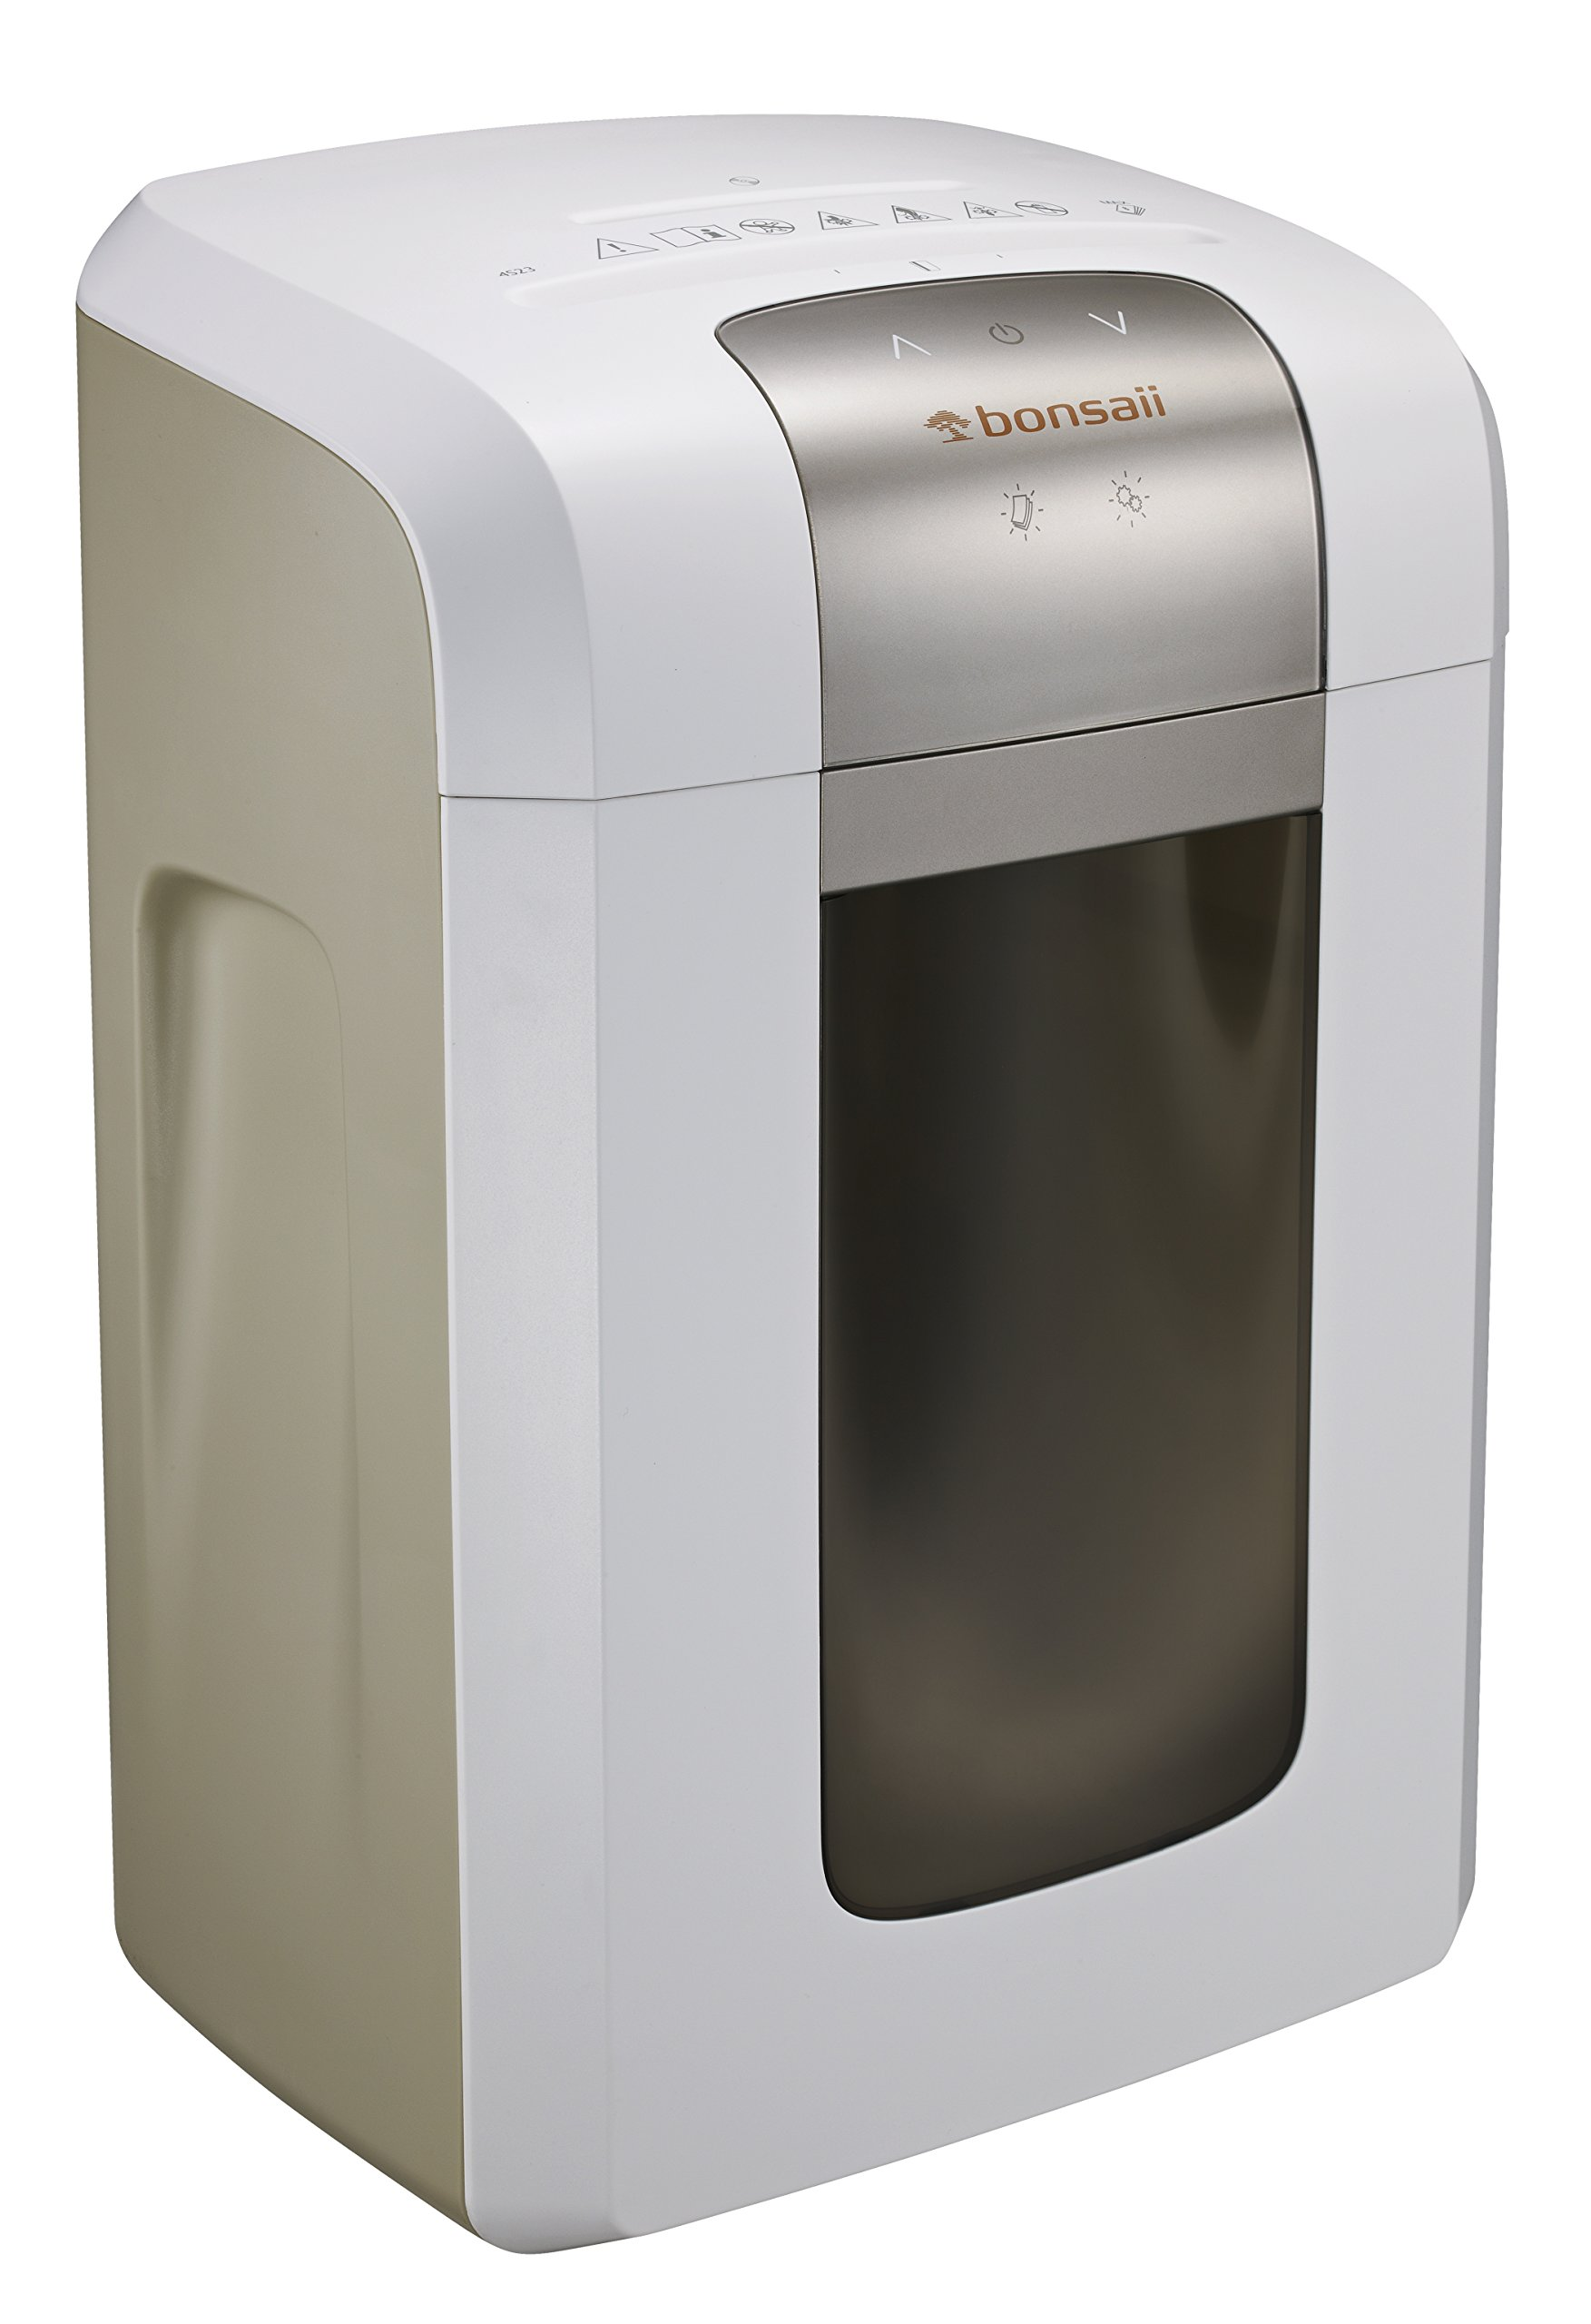 Bonsaii EverShred Pro 3S23 Heavy Duty 14-Sheet Cross-Cut Paper/CD/Credit Card Shredder, 6 Gallons Wastebasket with 4 Casters and 120 Minutes Running Time, White by bonsaii